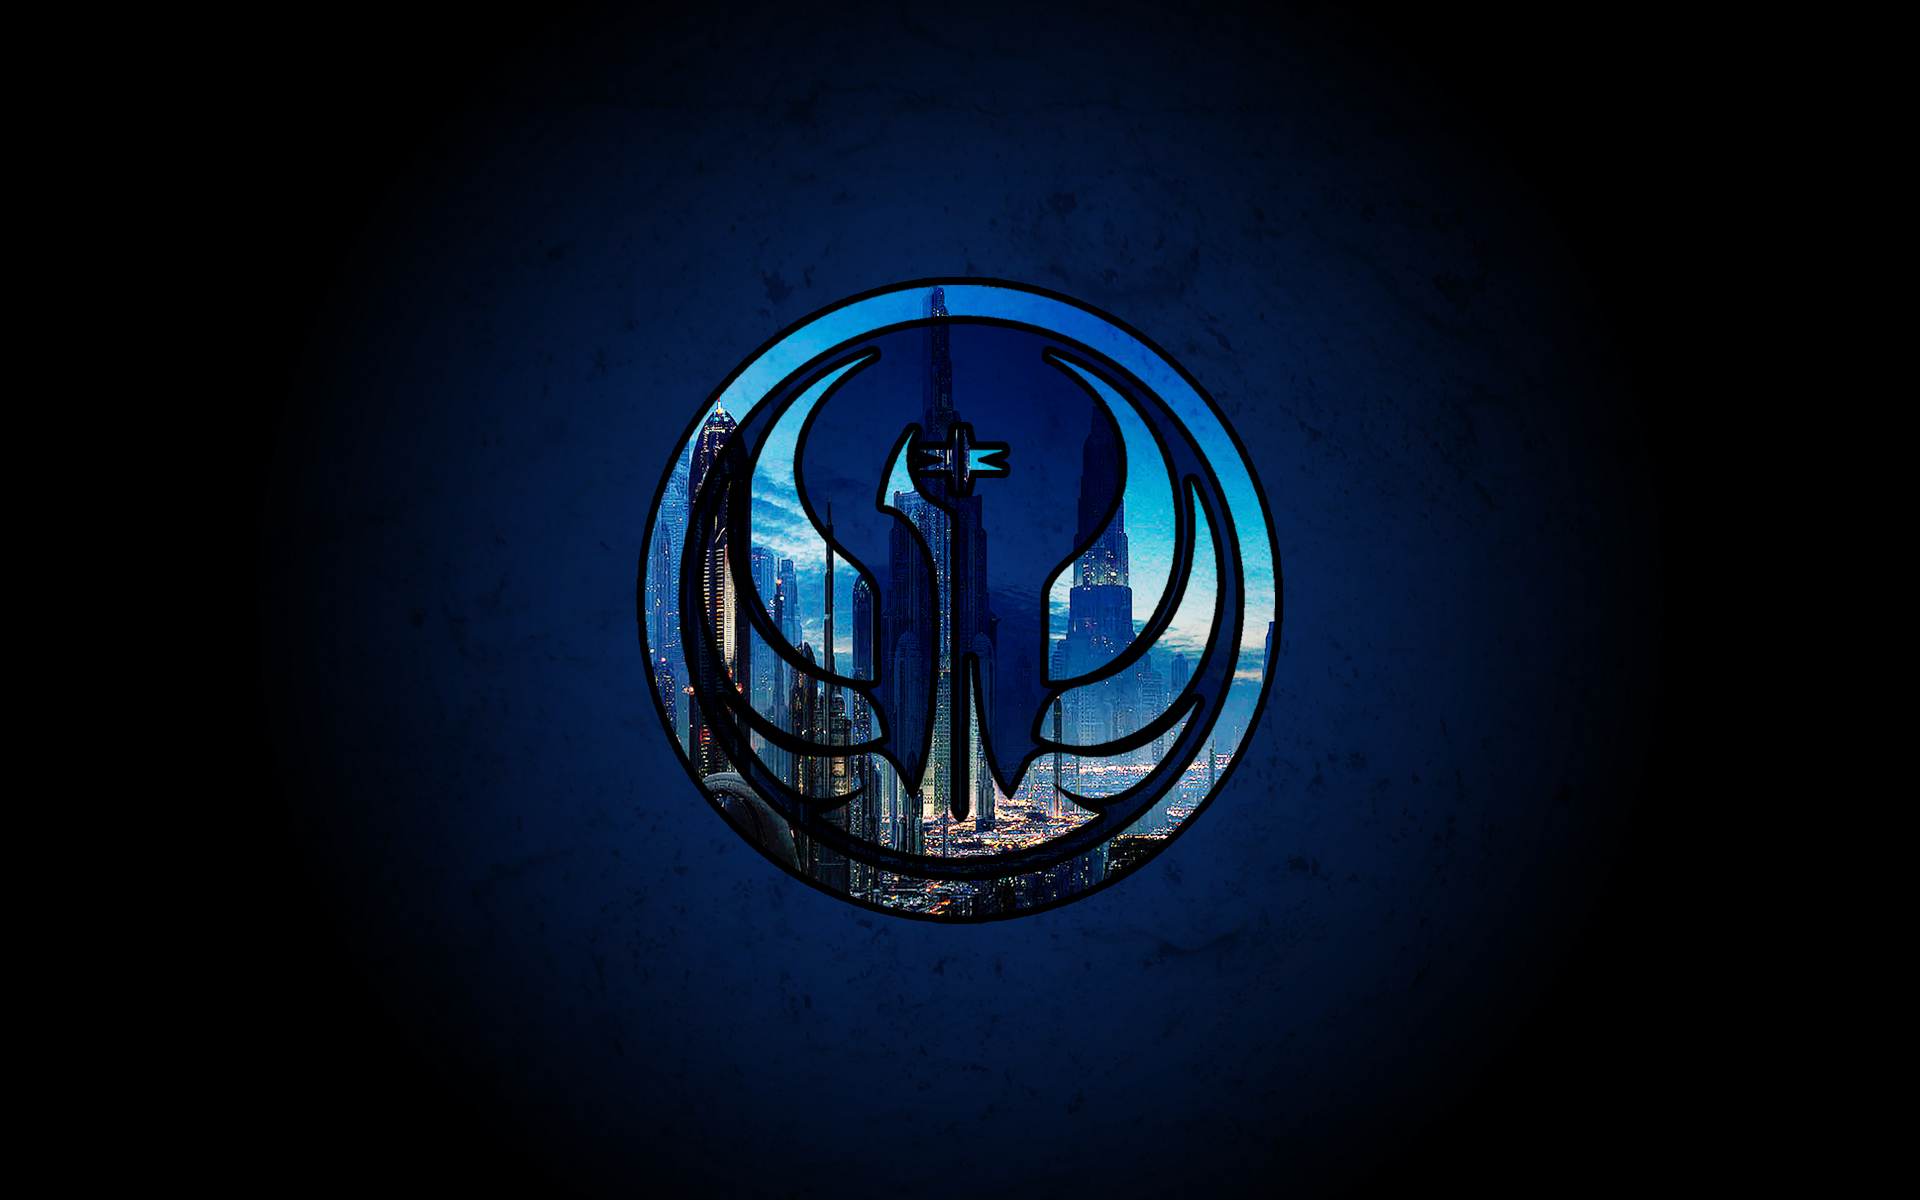 Tags Star Wars The Old Republic Swtor Logo Date 13 1920x1200